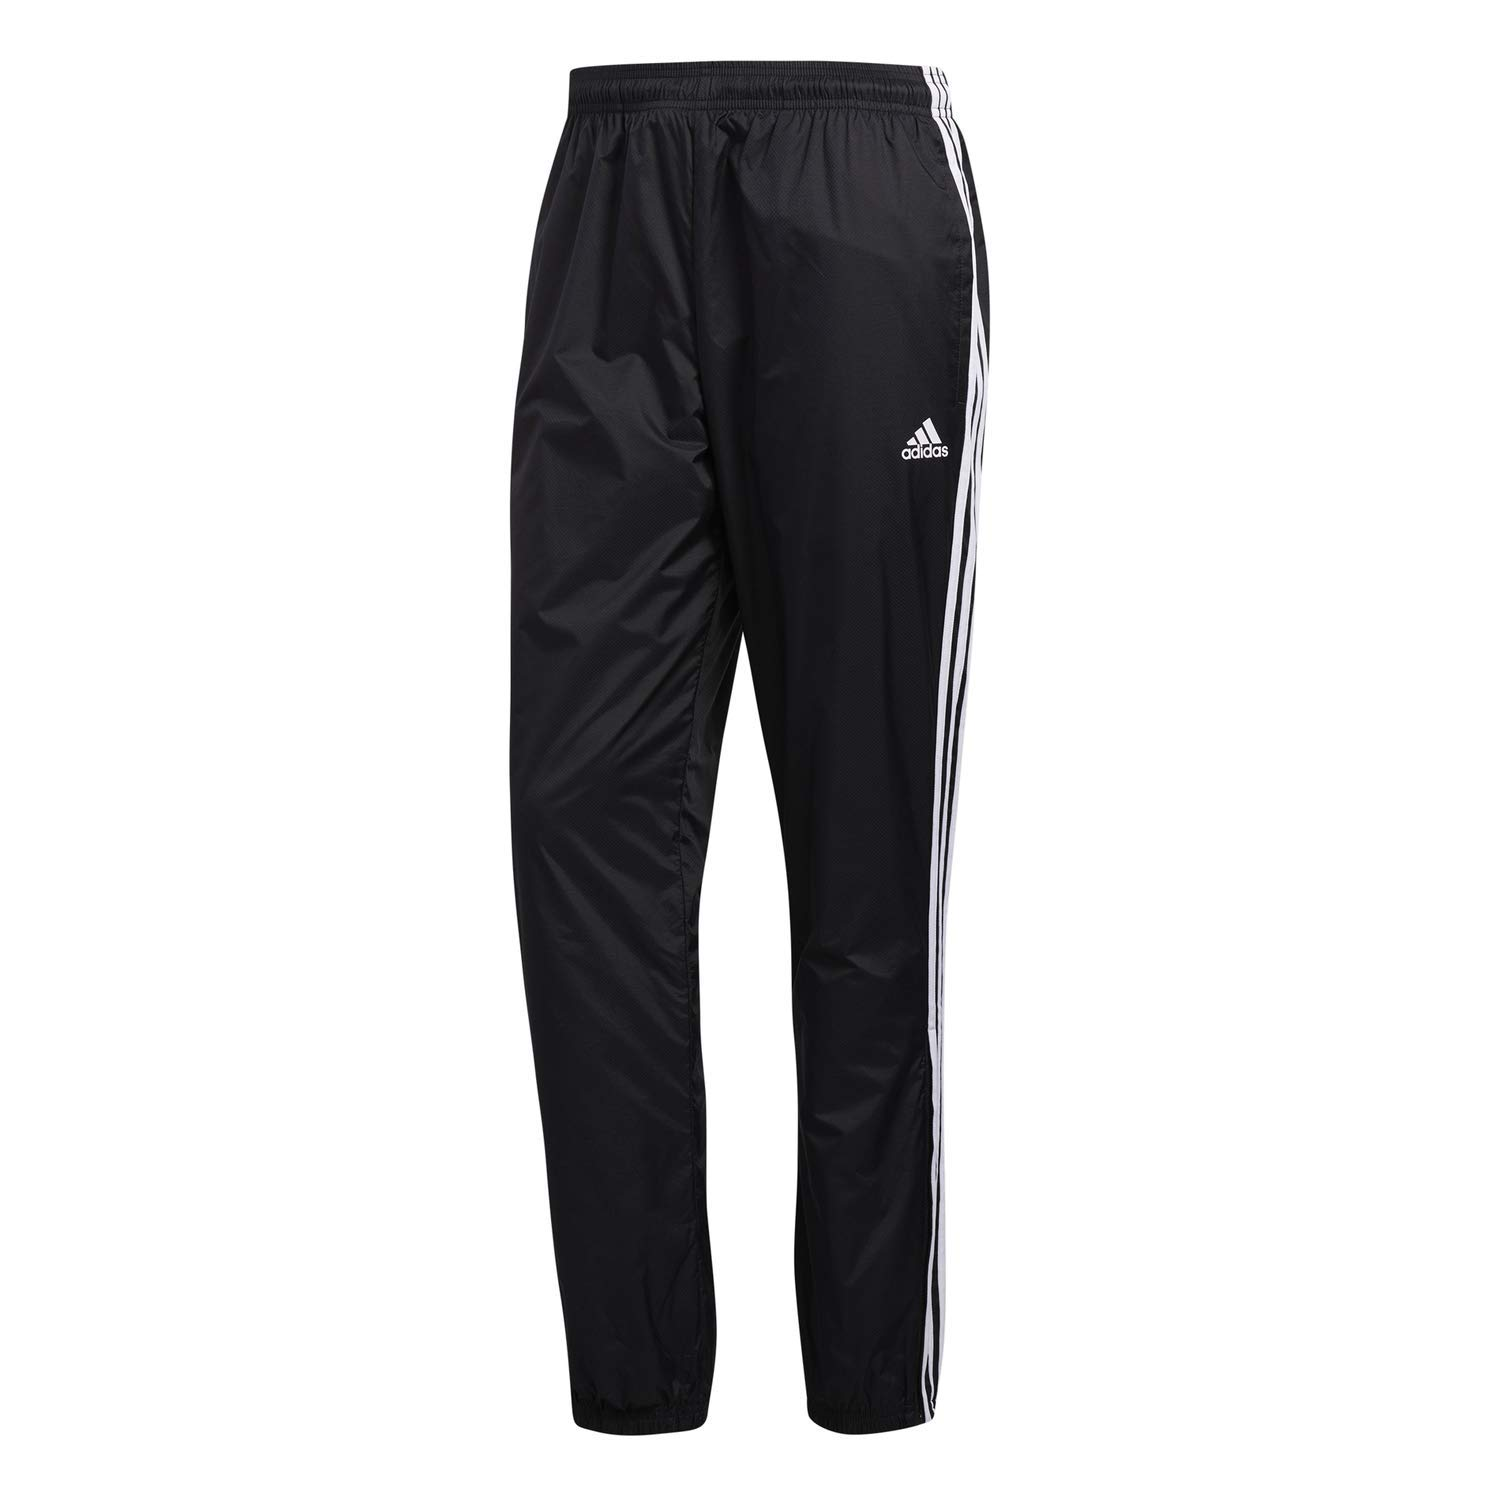 adidas Mens Athletics Essential 3 Stripe Jogger Pant, Black, Large by adidas